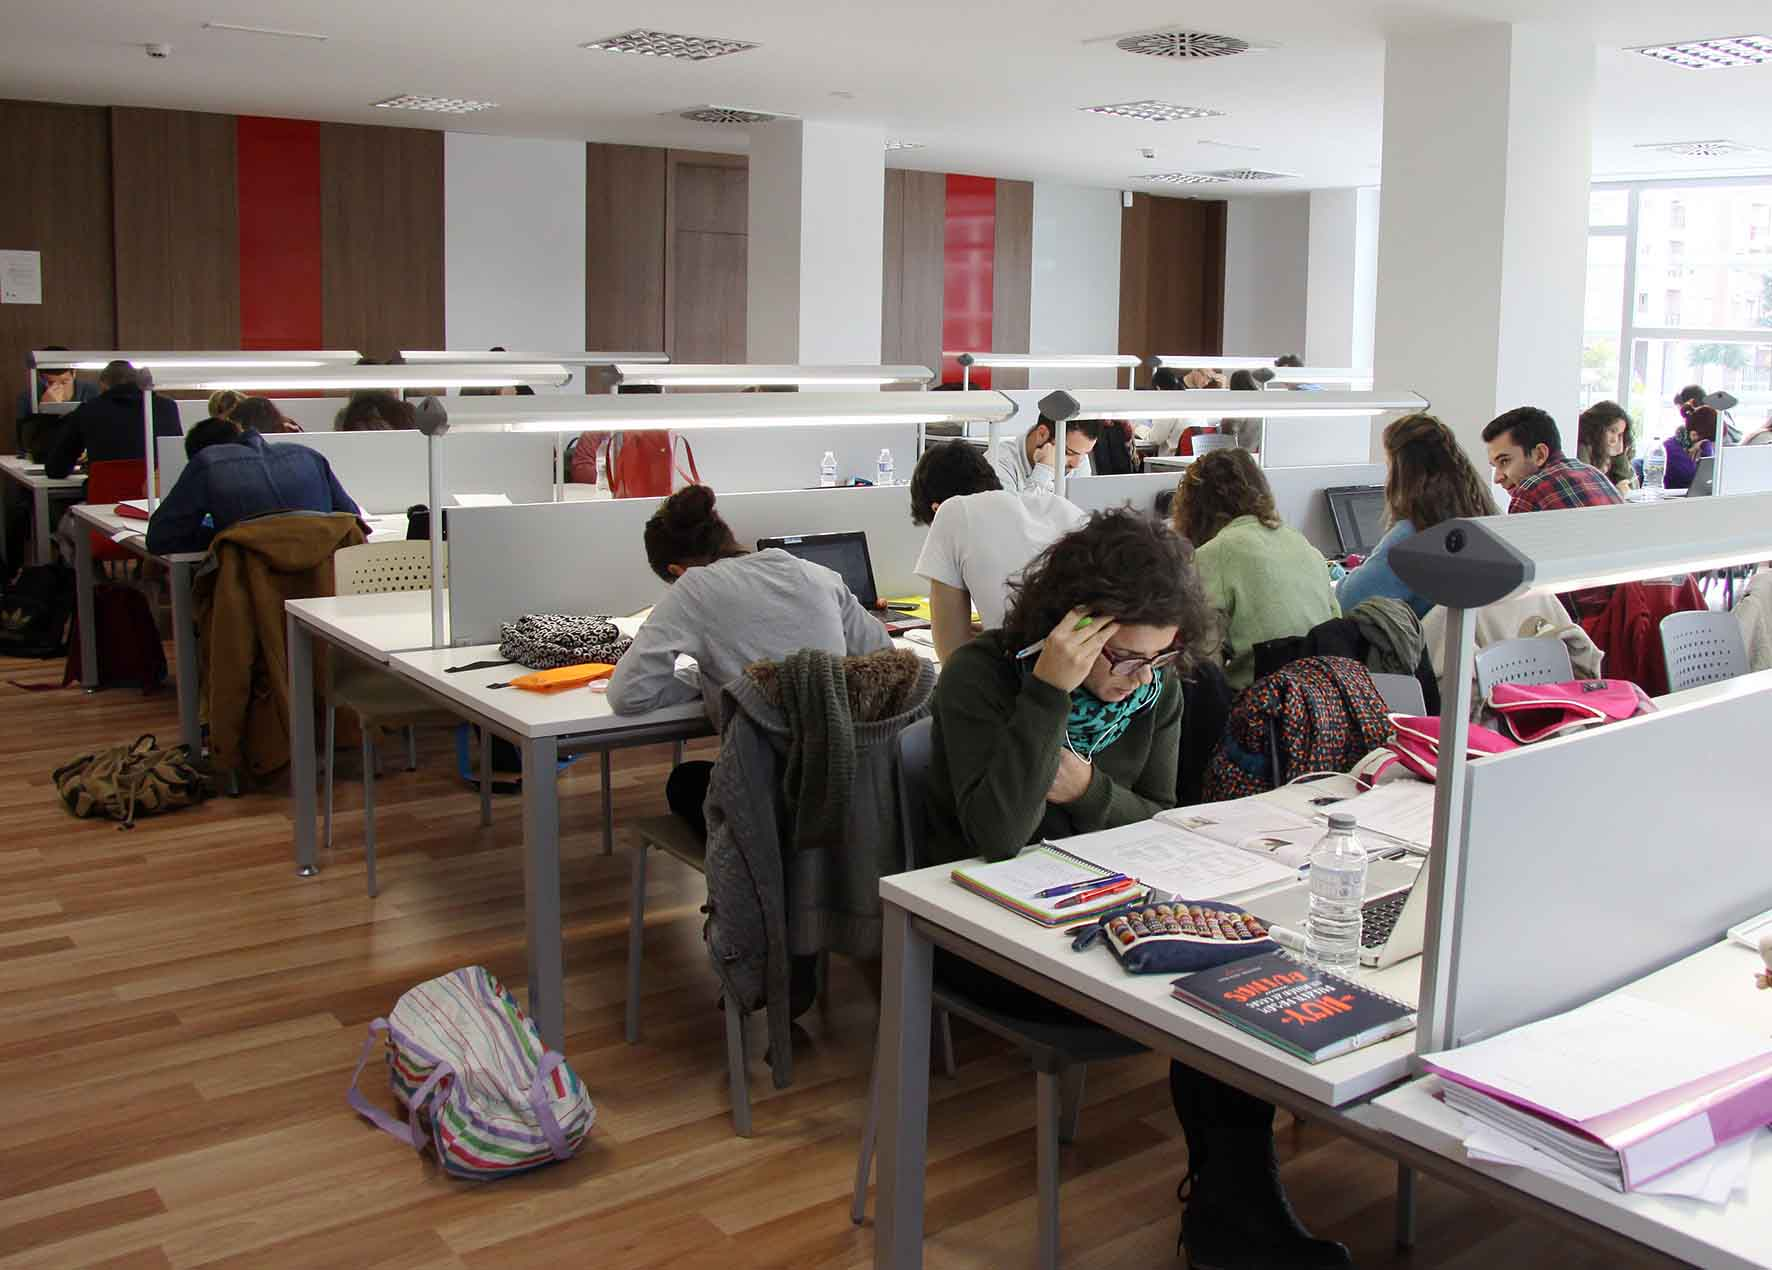 139 estudiantes de massanassa se benefician de la beca de for Sillas para estudiantes universitarios